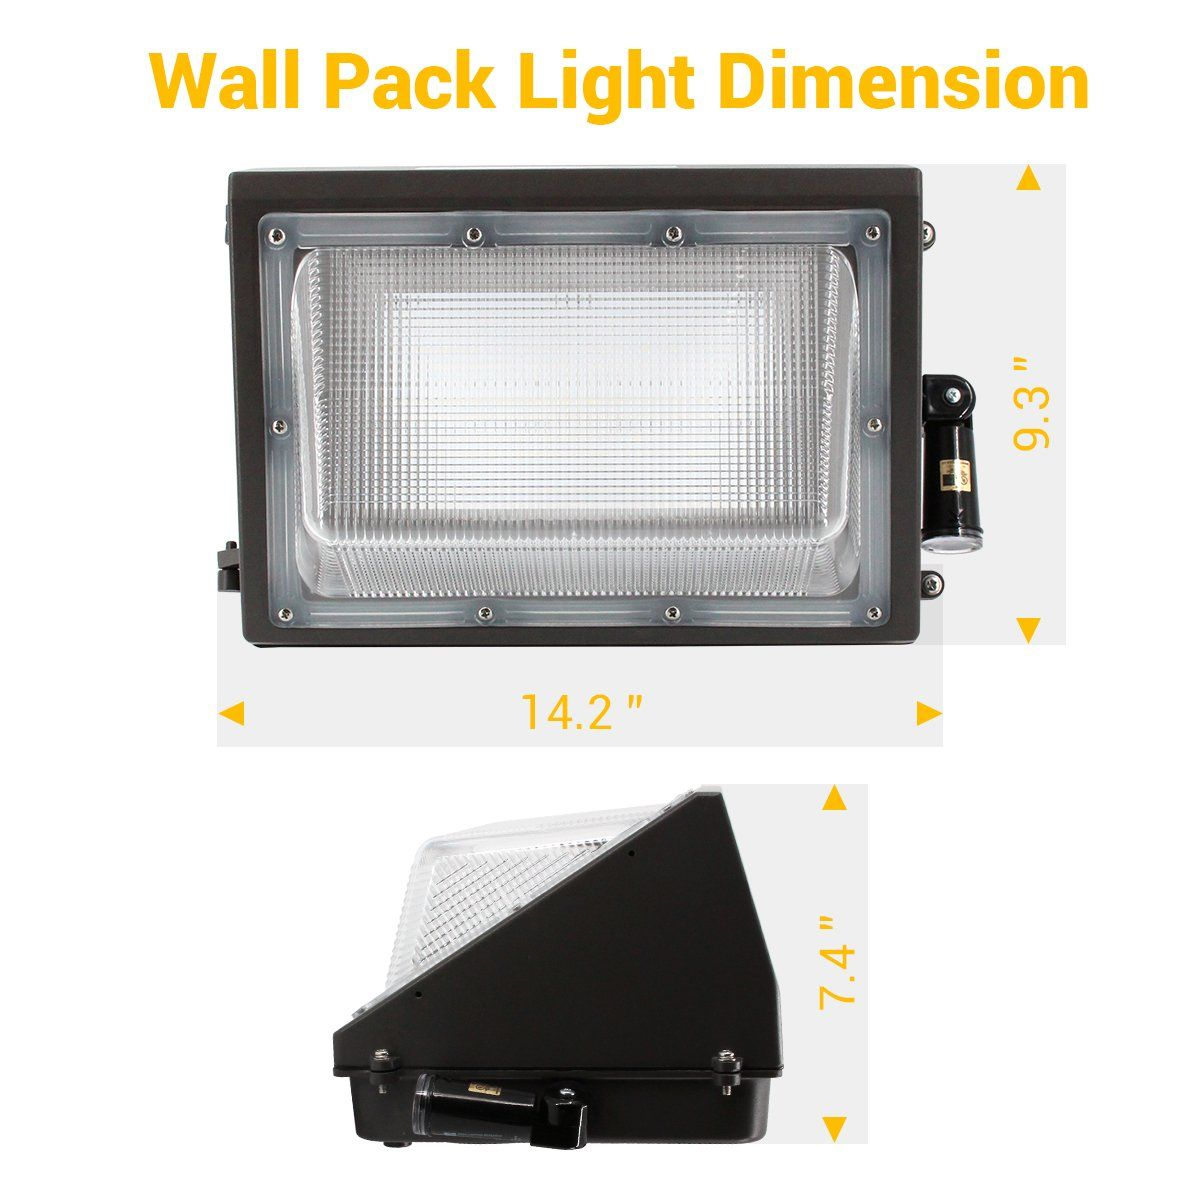 Best World Led 100w Led Wall Pack Light Dusk To Dawn 2 Photocells For 120277v Outdoor Lighting 50 Wall Pack Lights Wall Packs Lighting Ceiling Fans